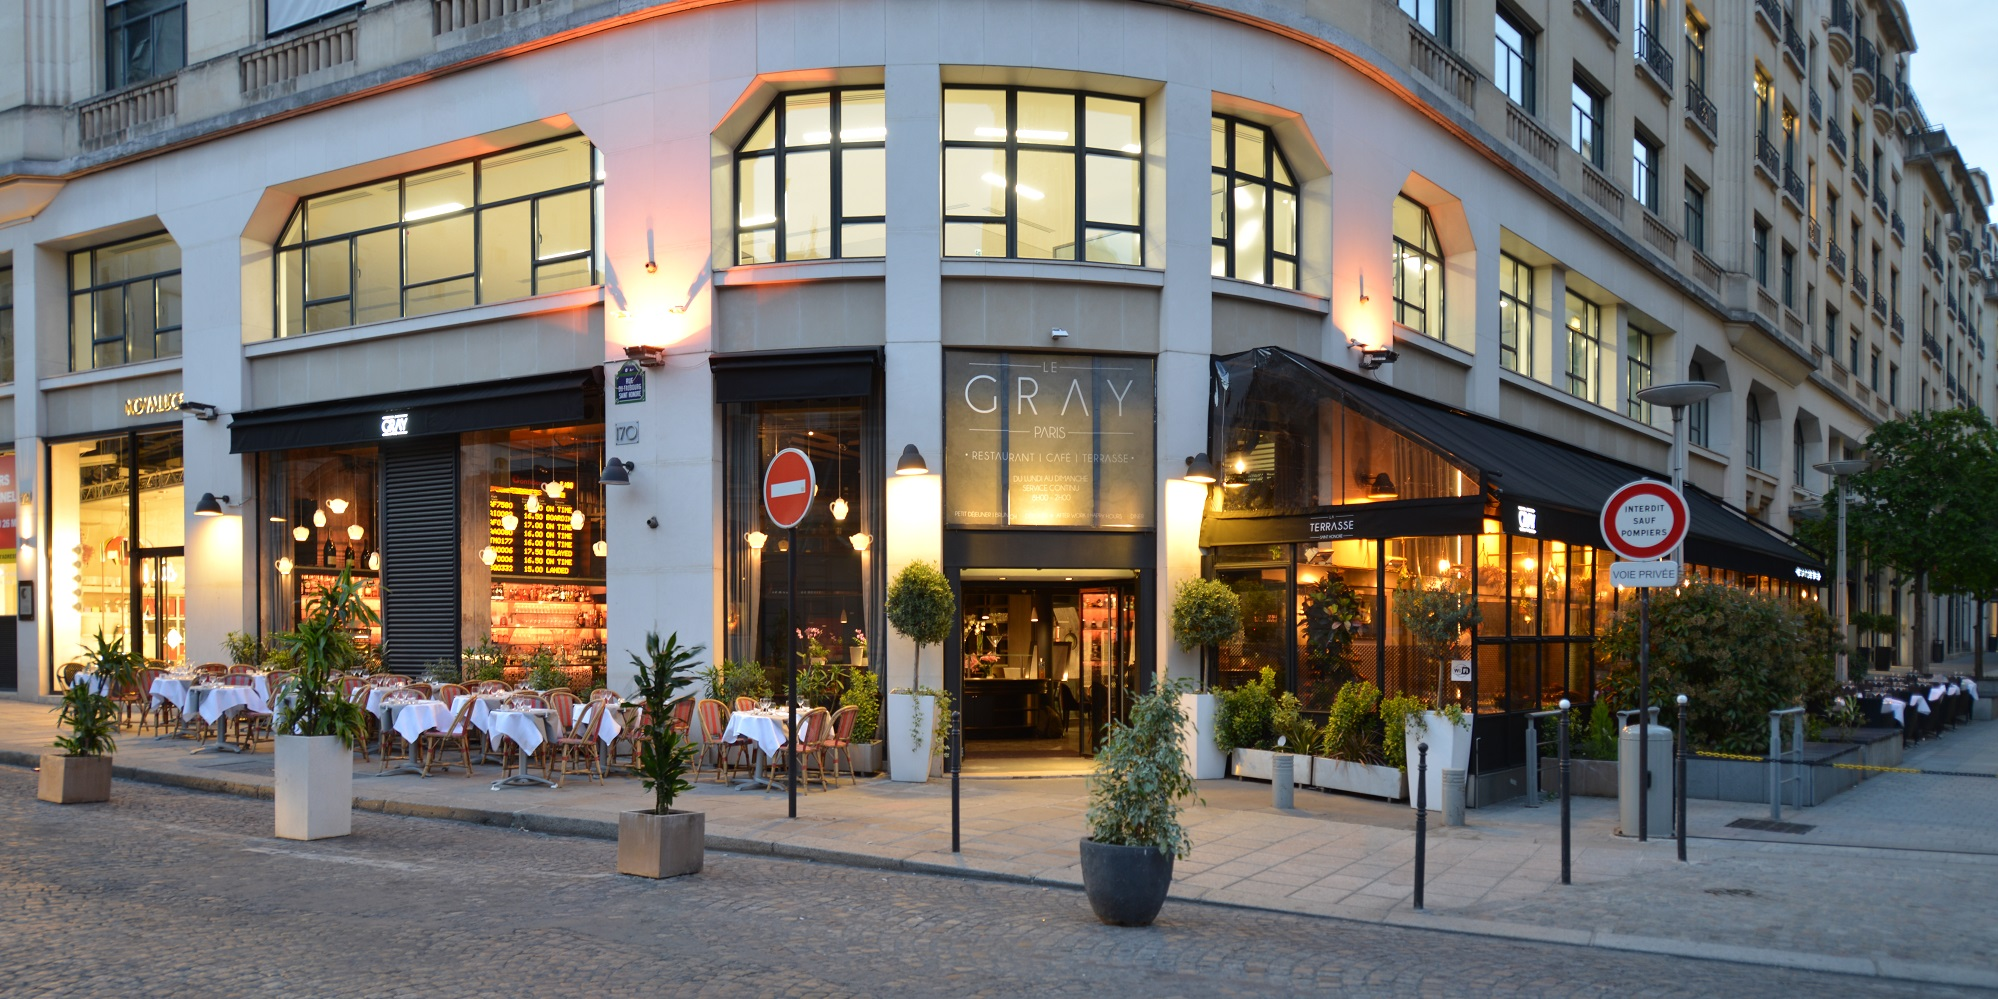 Brunch En Terrasse Paris Brunch Le Gray Paris 75008 Paris Oubruncher